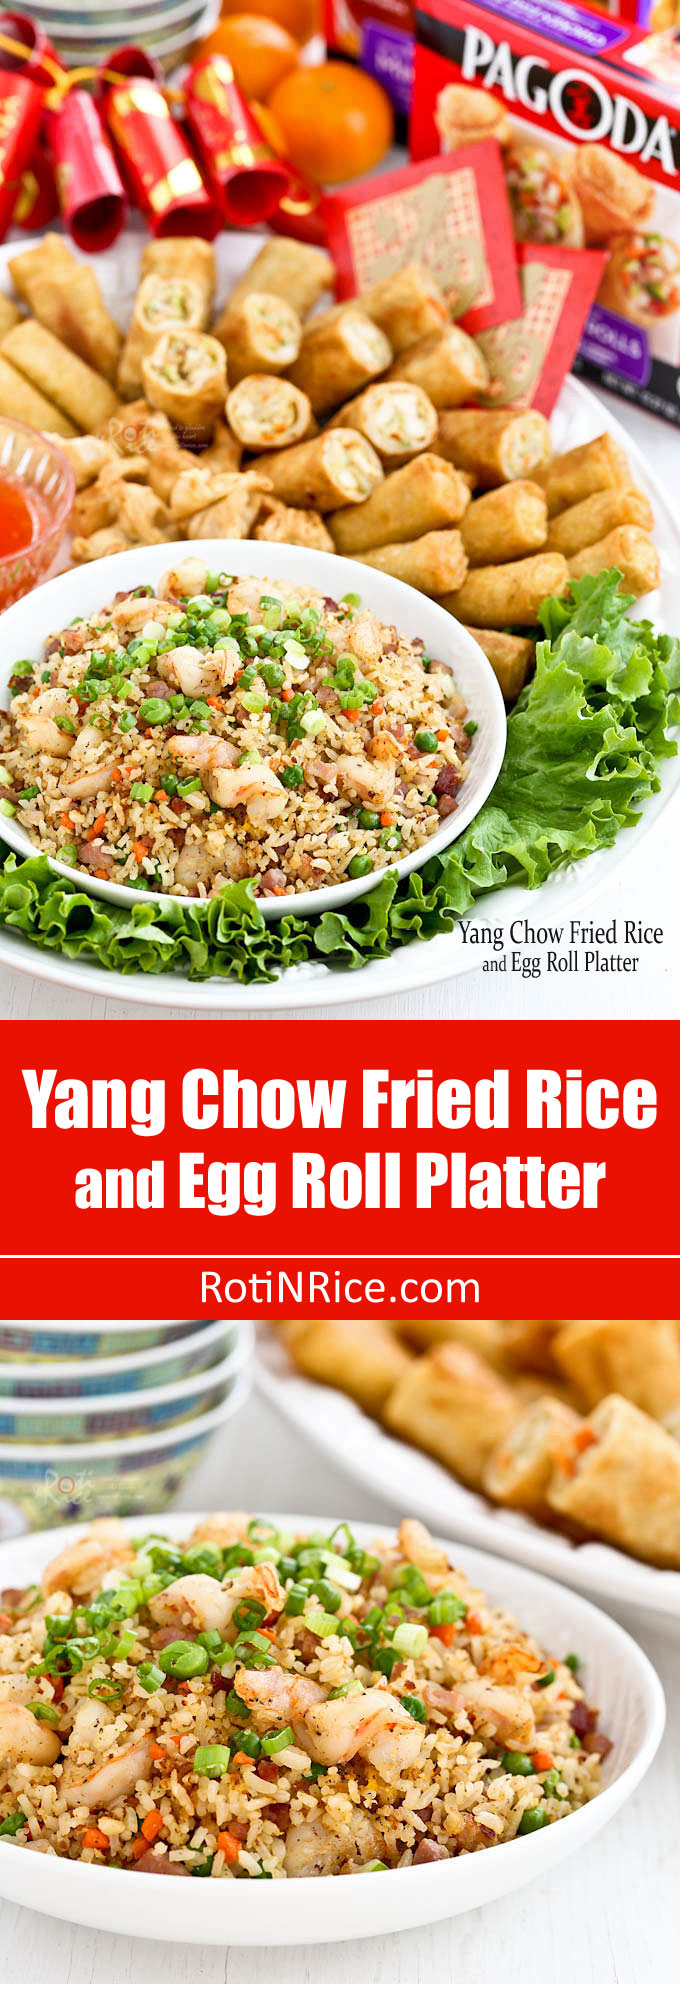 Yang Chow Fried Rice, a popular fried rice cooked with ham, shrimps, carrots, green peas, and eggs. Delicious served with Pagoda egg rolls. | RotiNRice.com